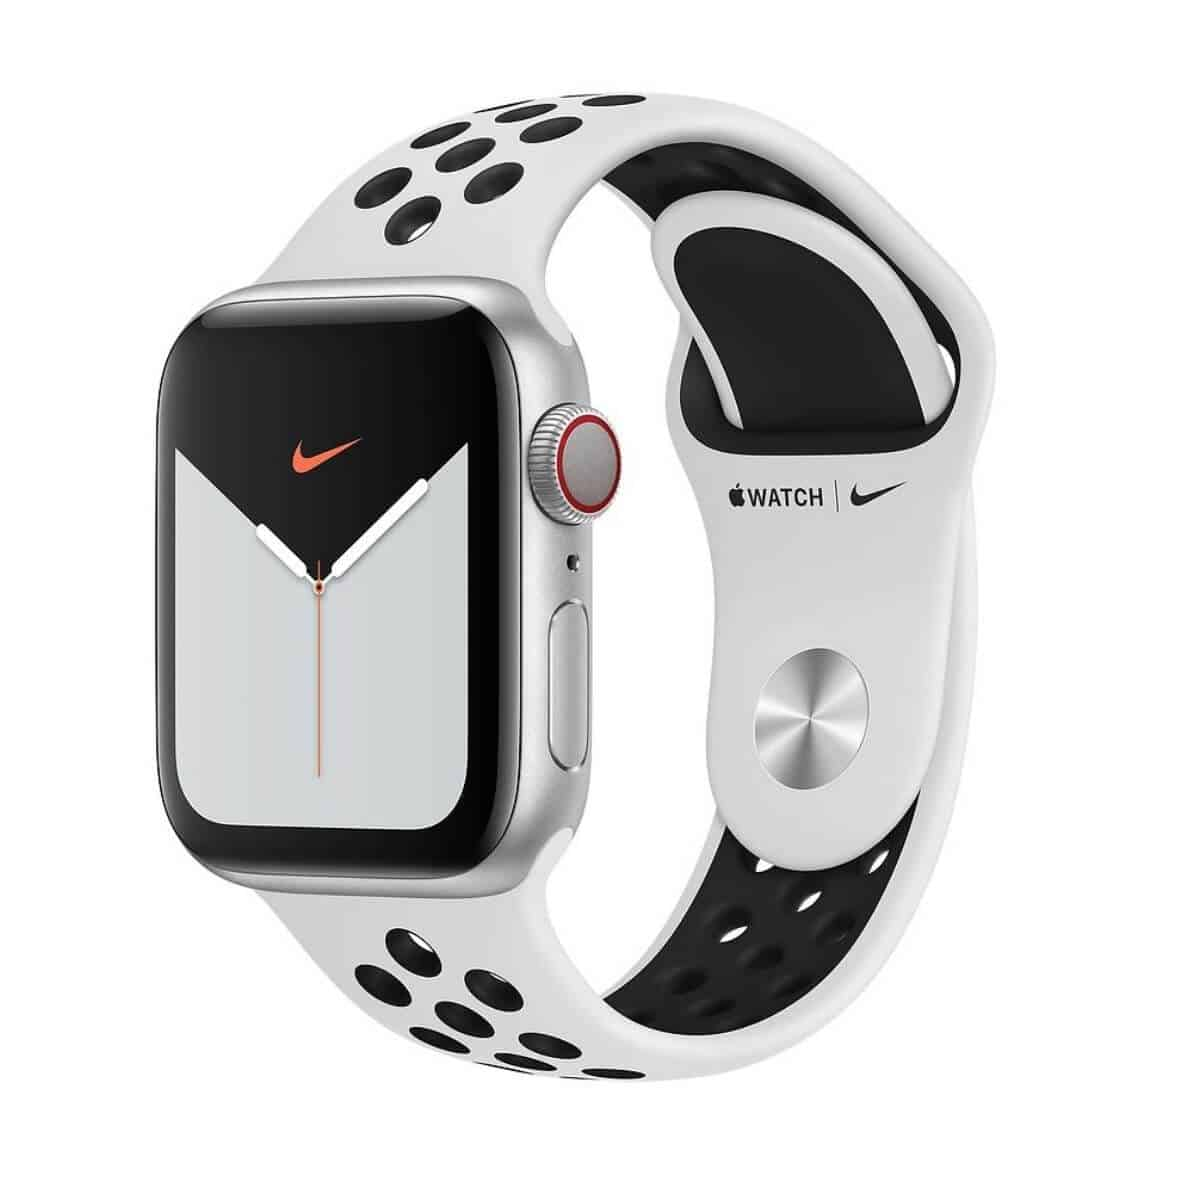 Apple Watch with a white and black Nike Sport band.